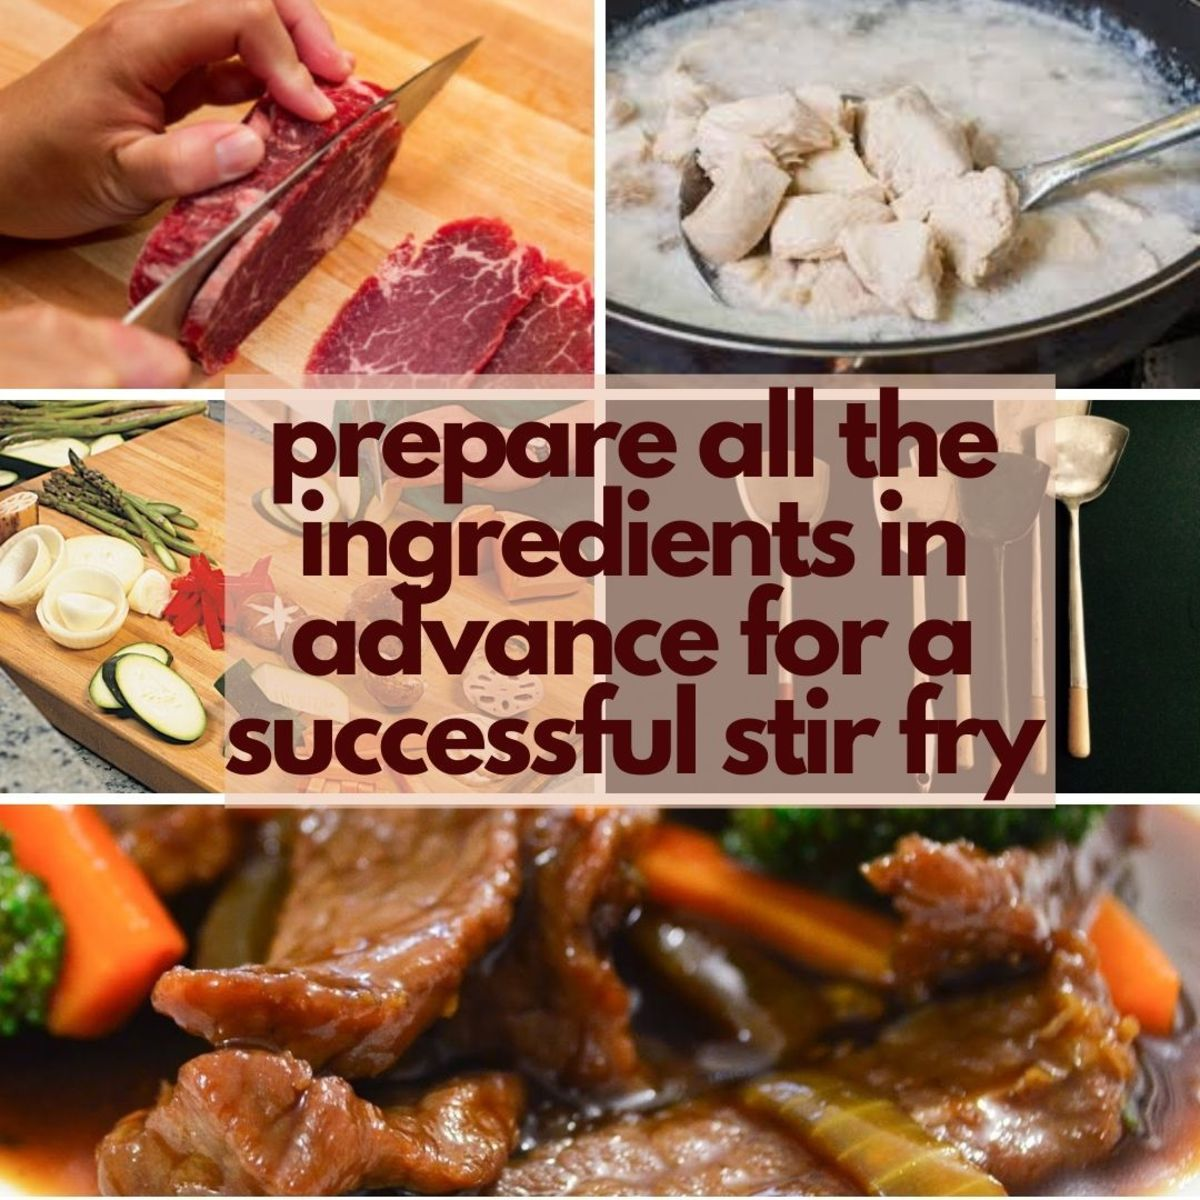 Preparing all ingredients in advance is one of the key secret to a successful stir fry